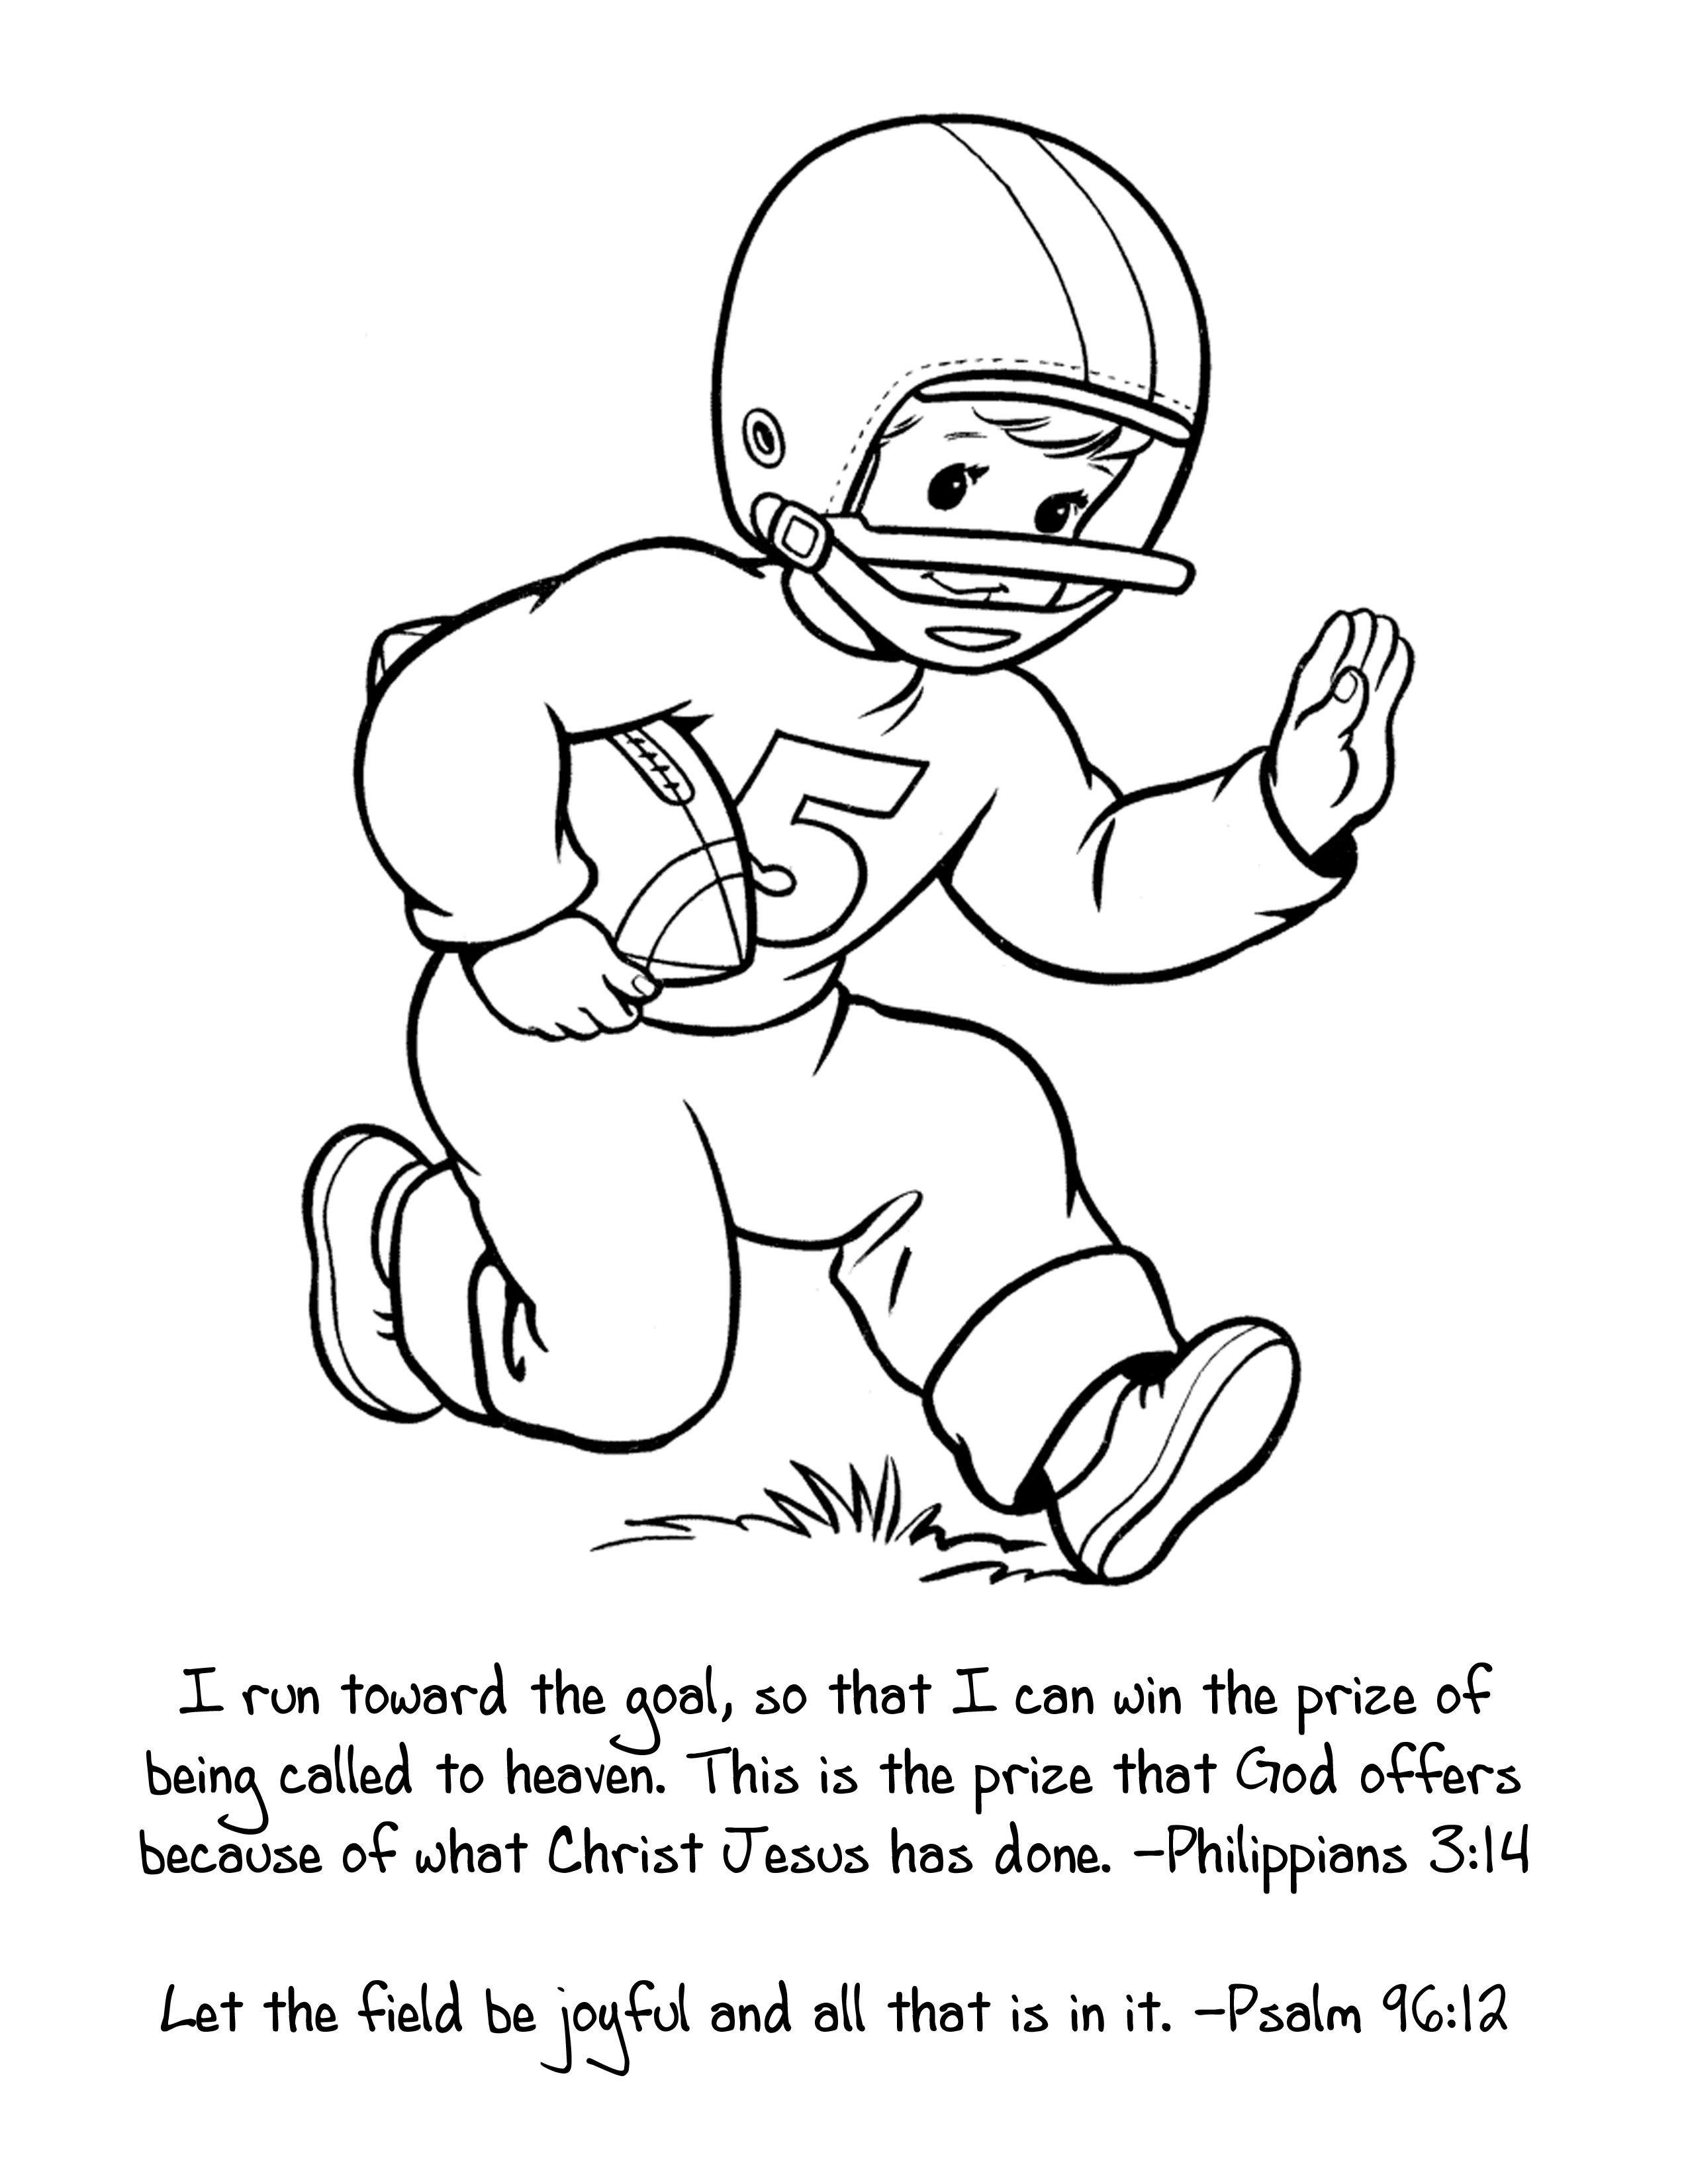 Perfect Sunday School Coloring Sheet For Super Bowl Sunday